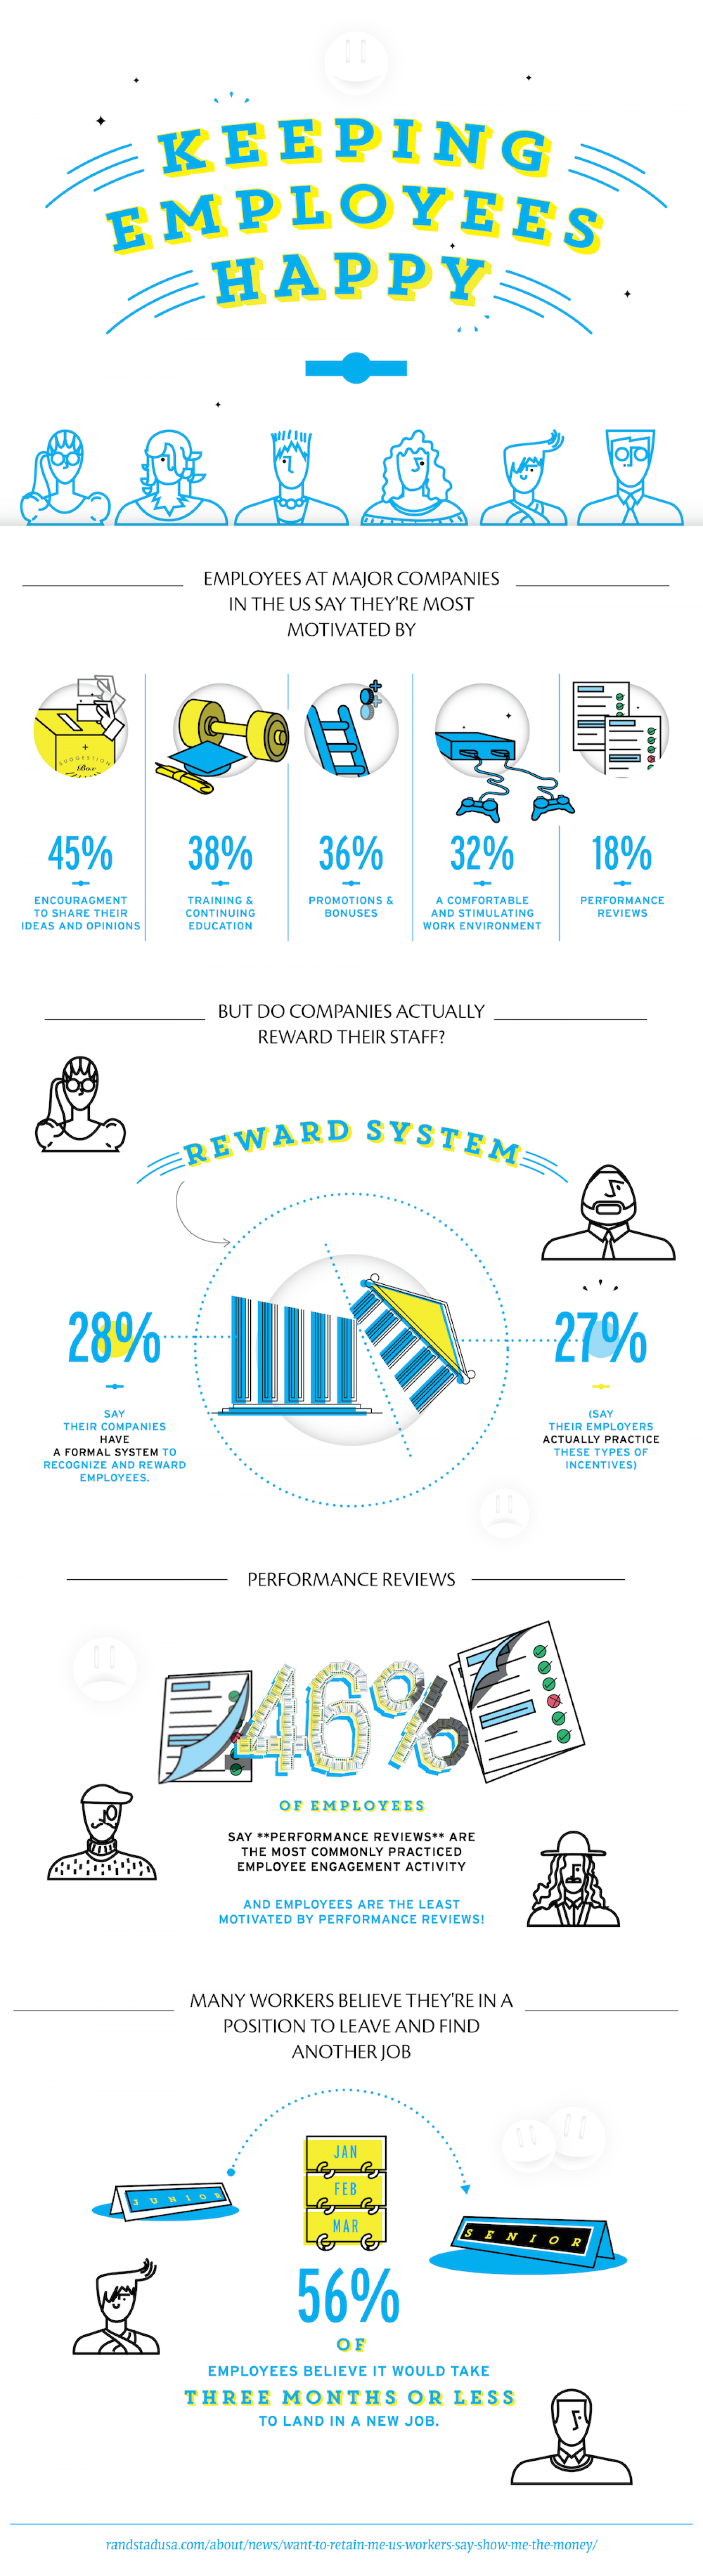 Keeping Employees Happy Infographic